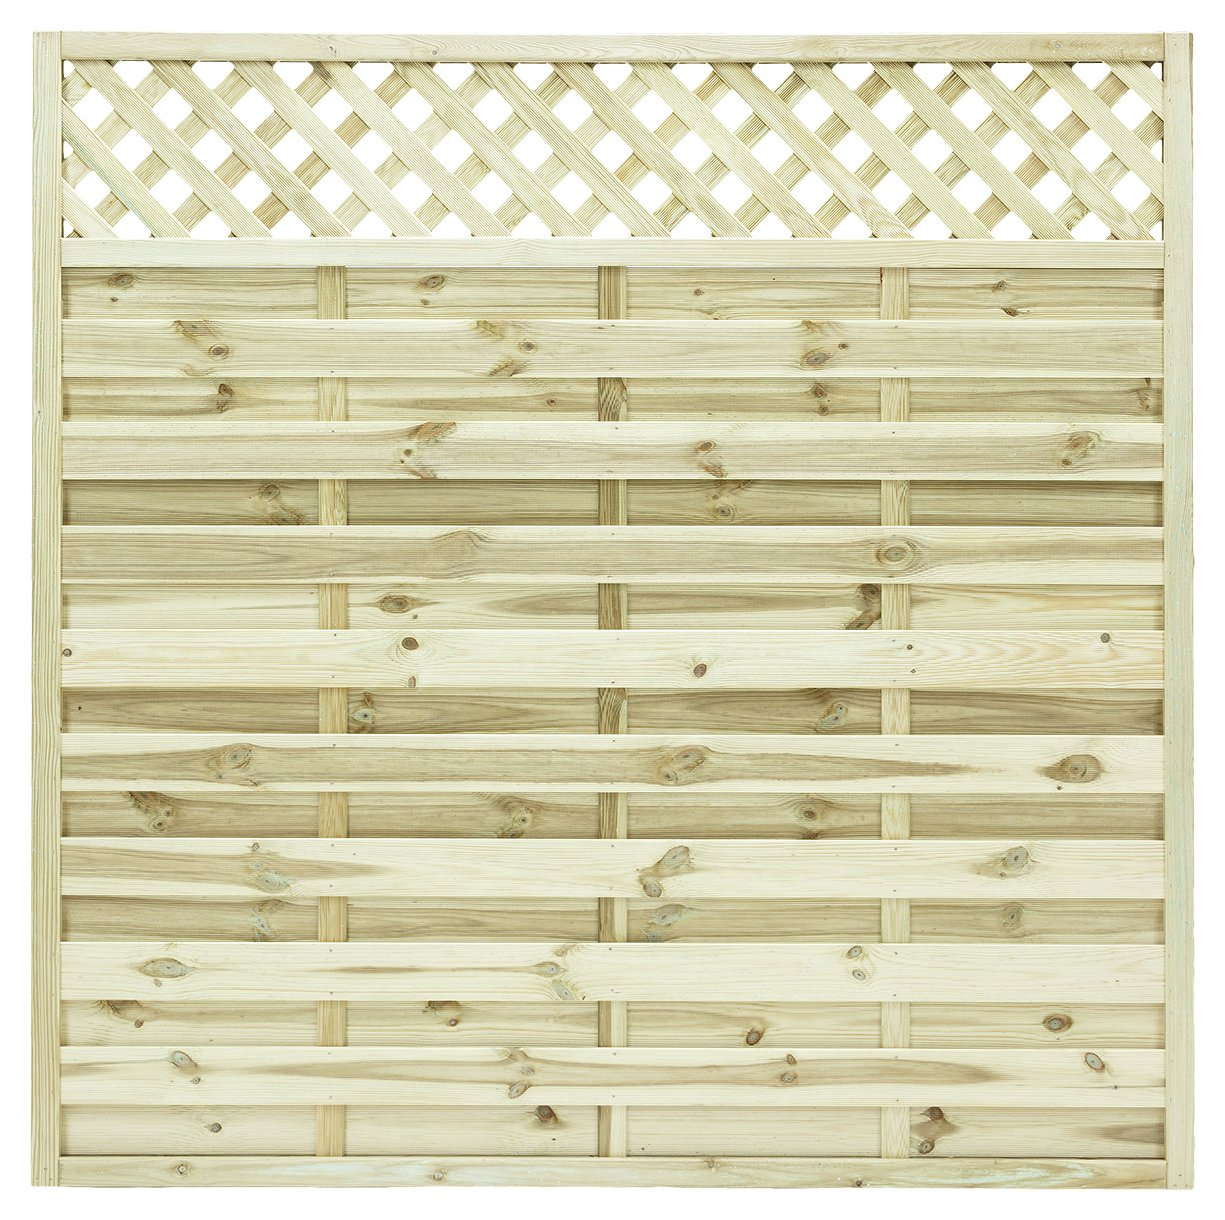 Grange St Malo 1.8m Fence Panel - Pack of 4. lowest price